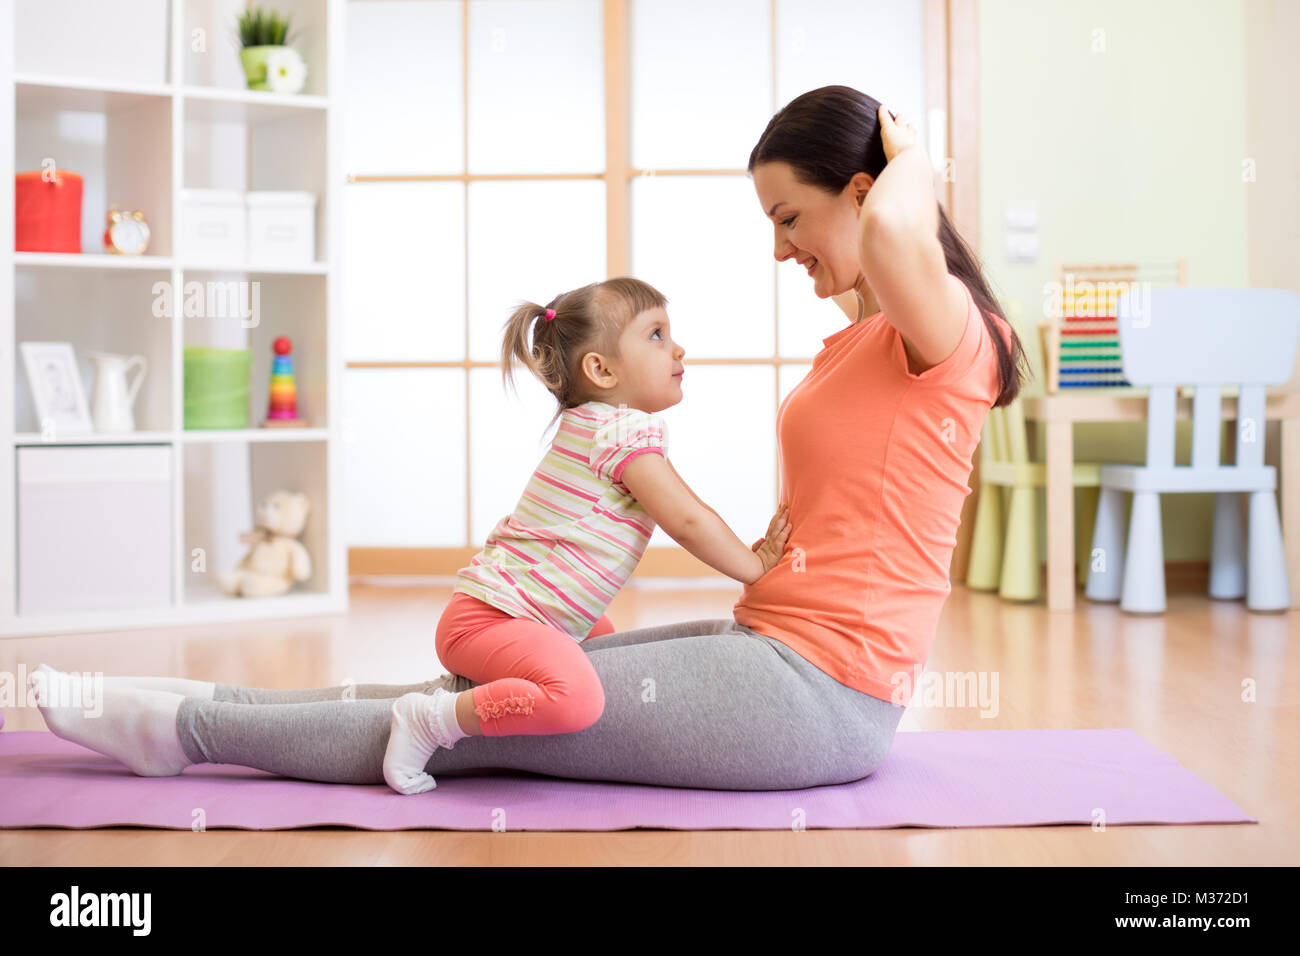 Mom and child doing fitness exercises on mat at home - Stock Image